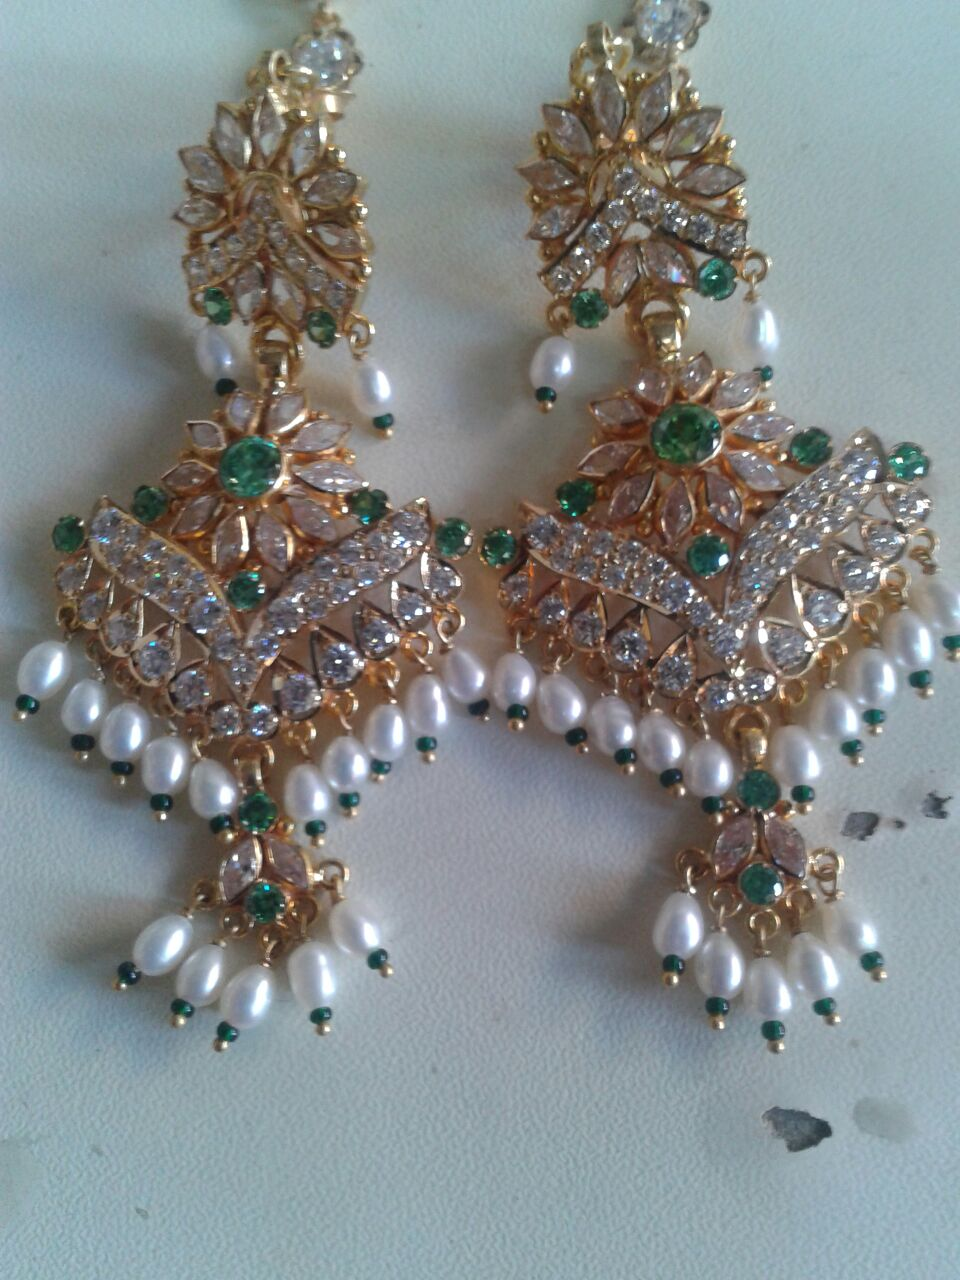 rajasthani amrita main lesley erc earrings gunmetal product singh shop clear jewelry